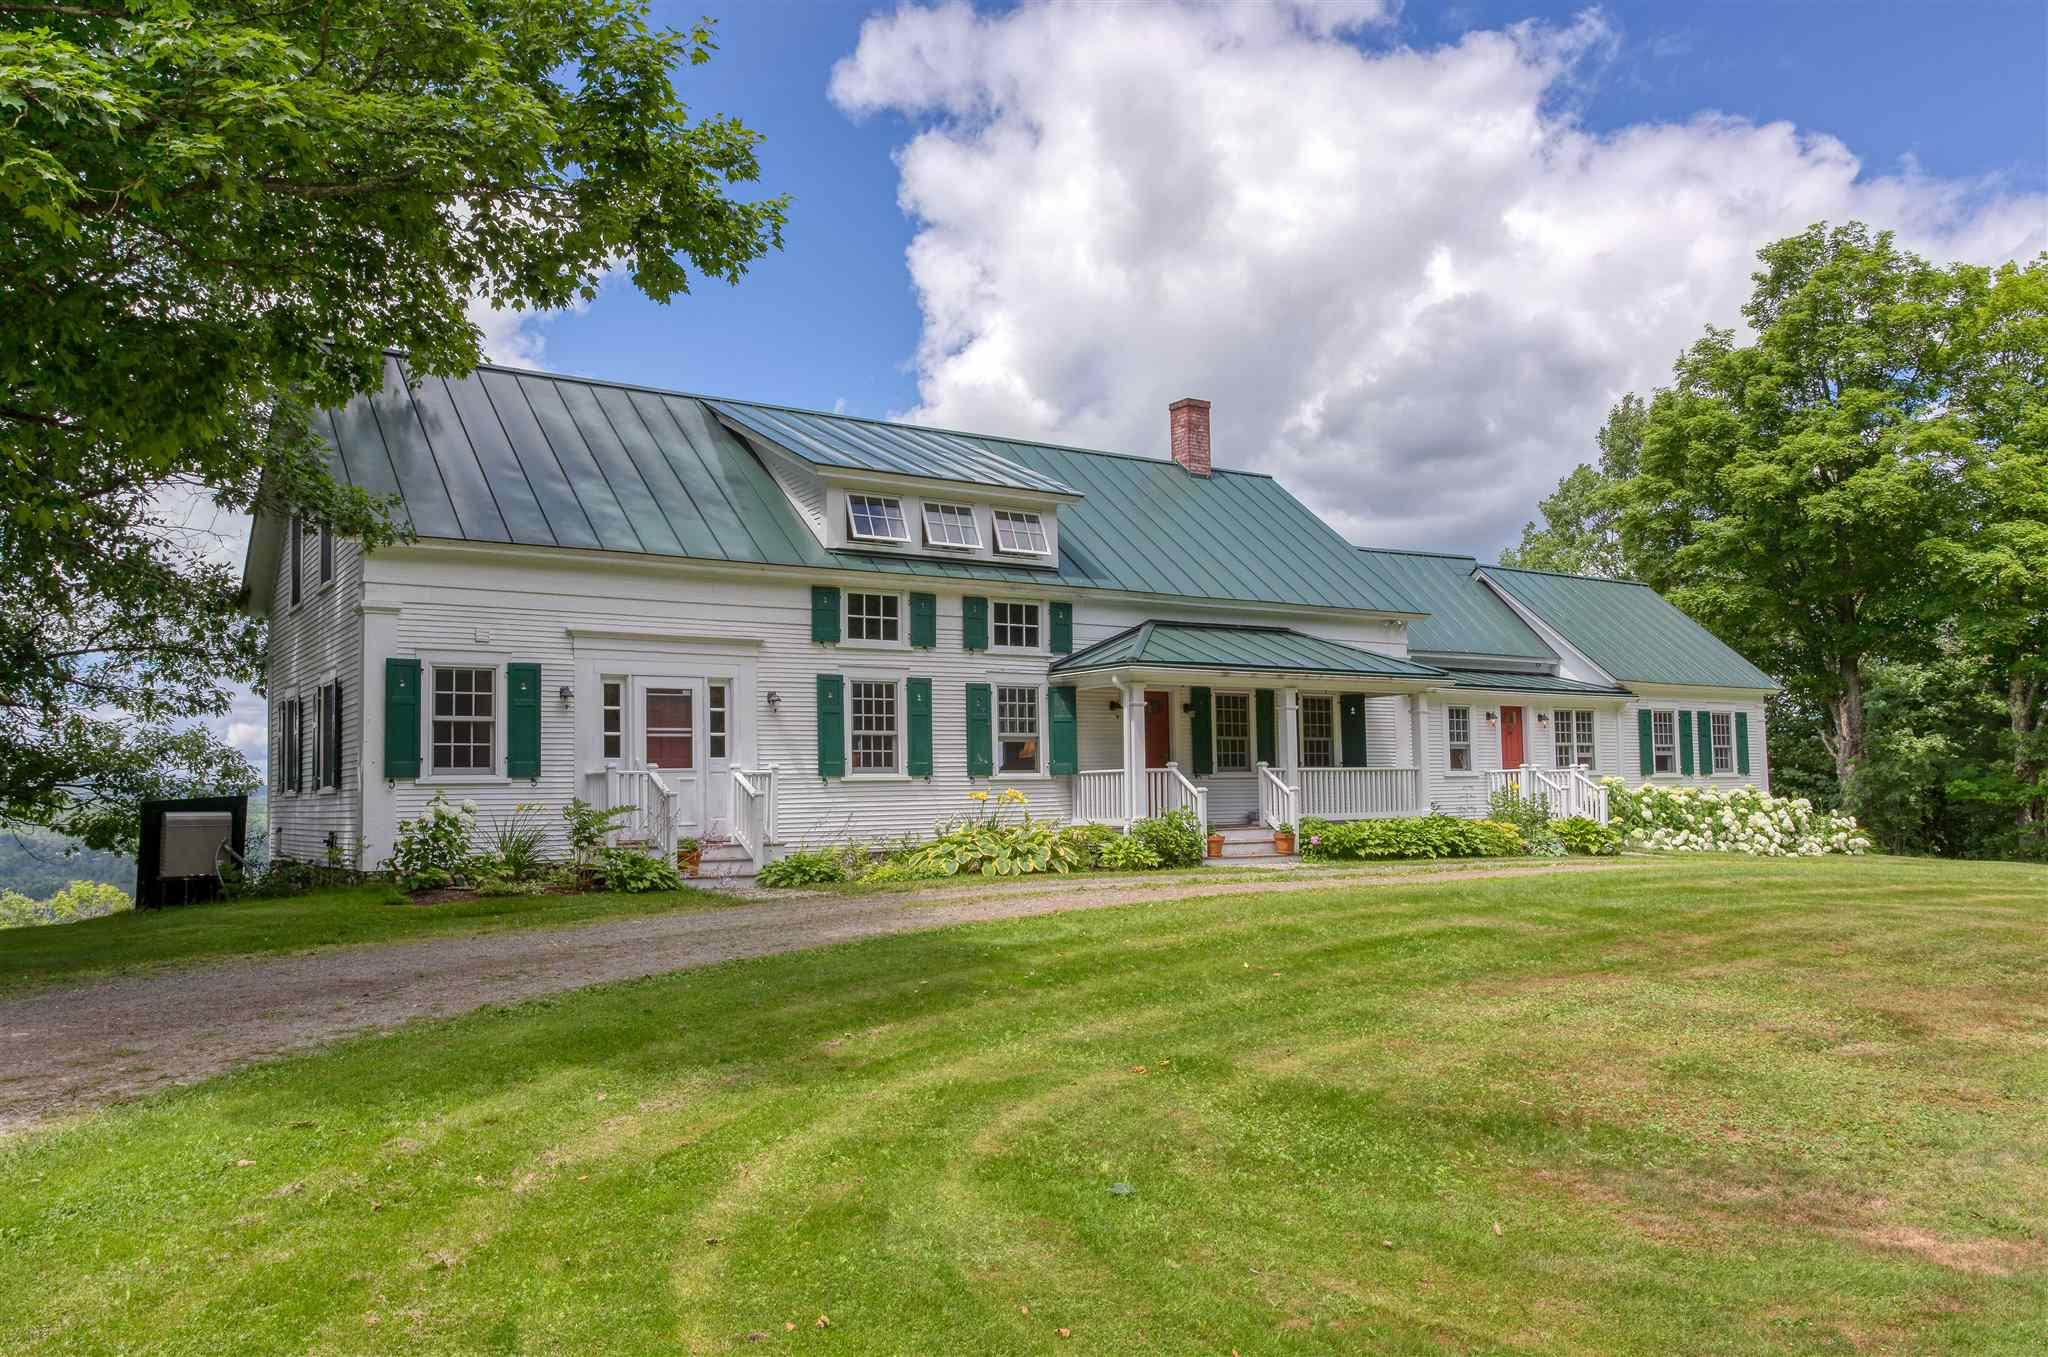 Photo of 163 Slawson Drive Craftsbury VT 05826